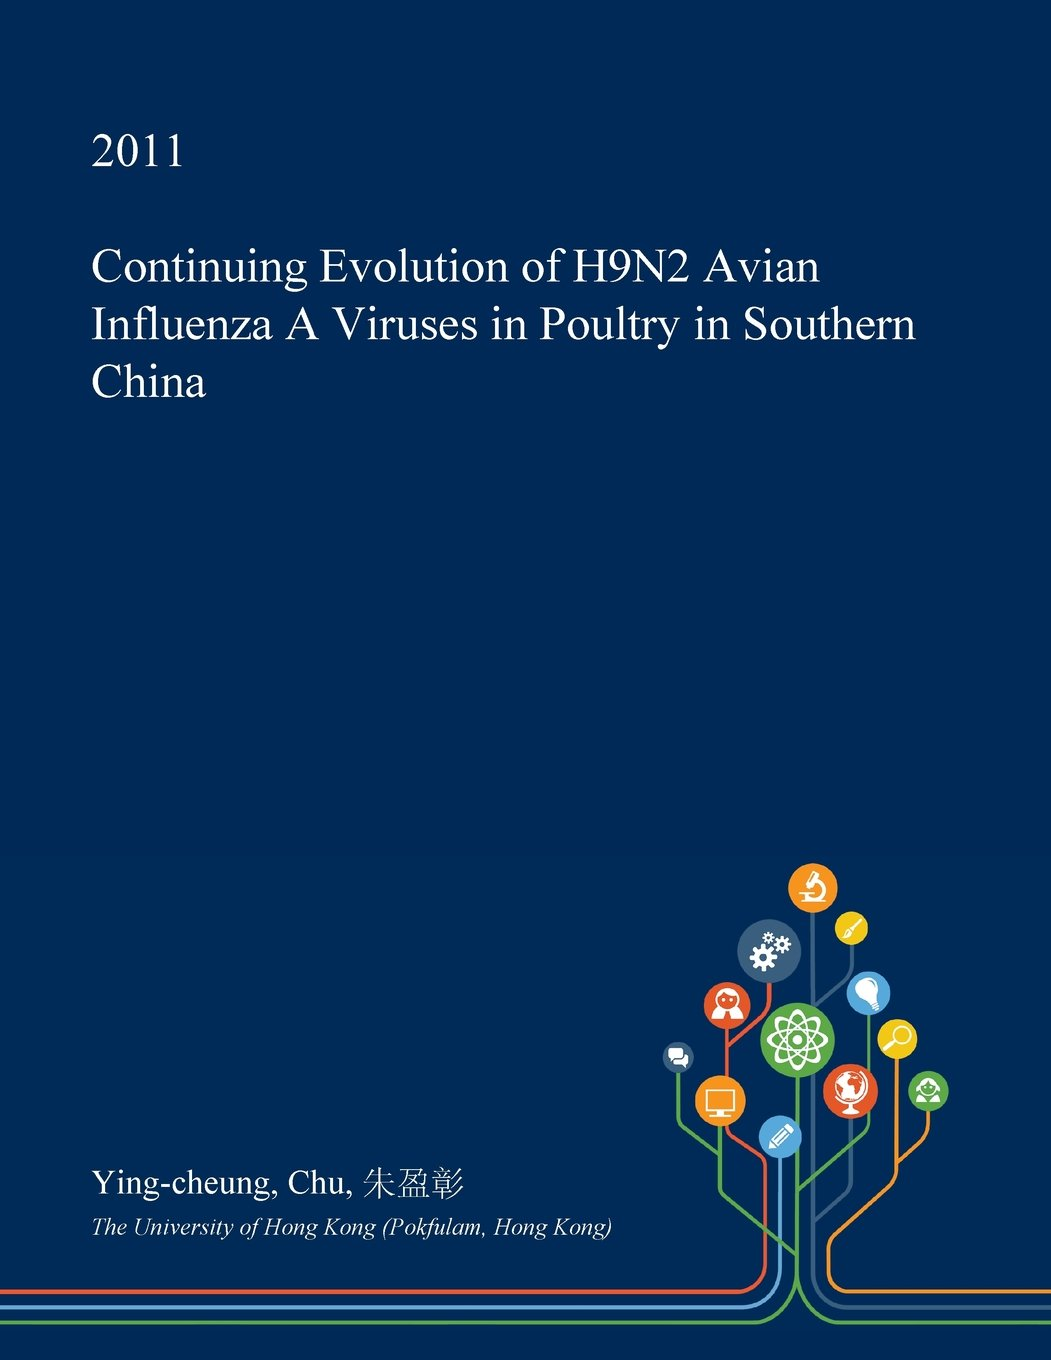 Continuing Evolution of H9N2 Avian Influenza A Viruses in Poultry in Southern China: Amazon.es: Chu, Ying-cheung, 朱盈彰: Libros en idiomas extranjeros